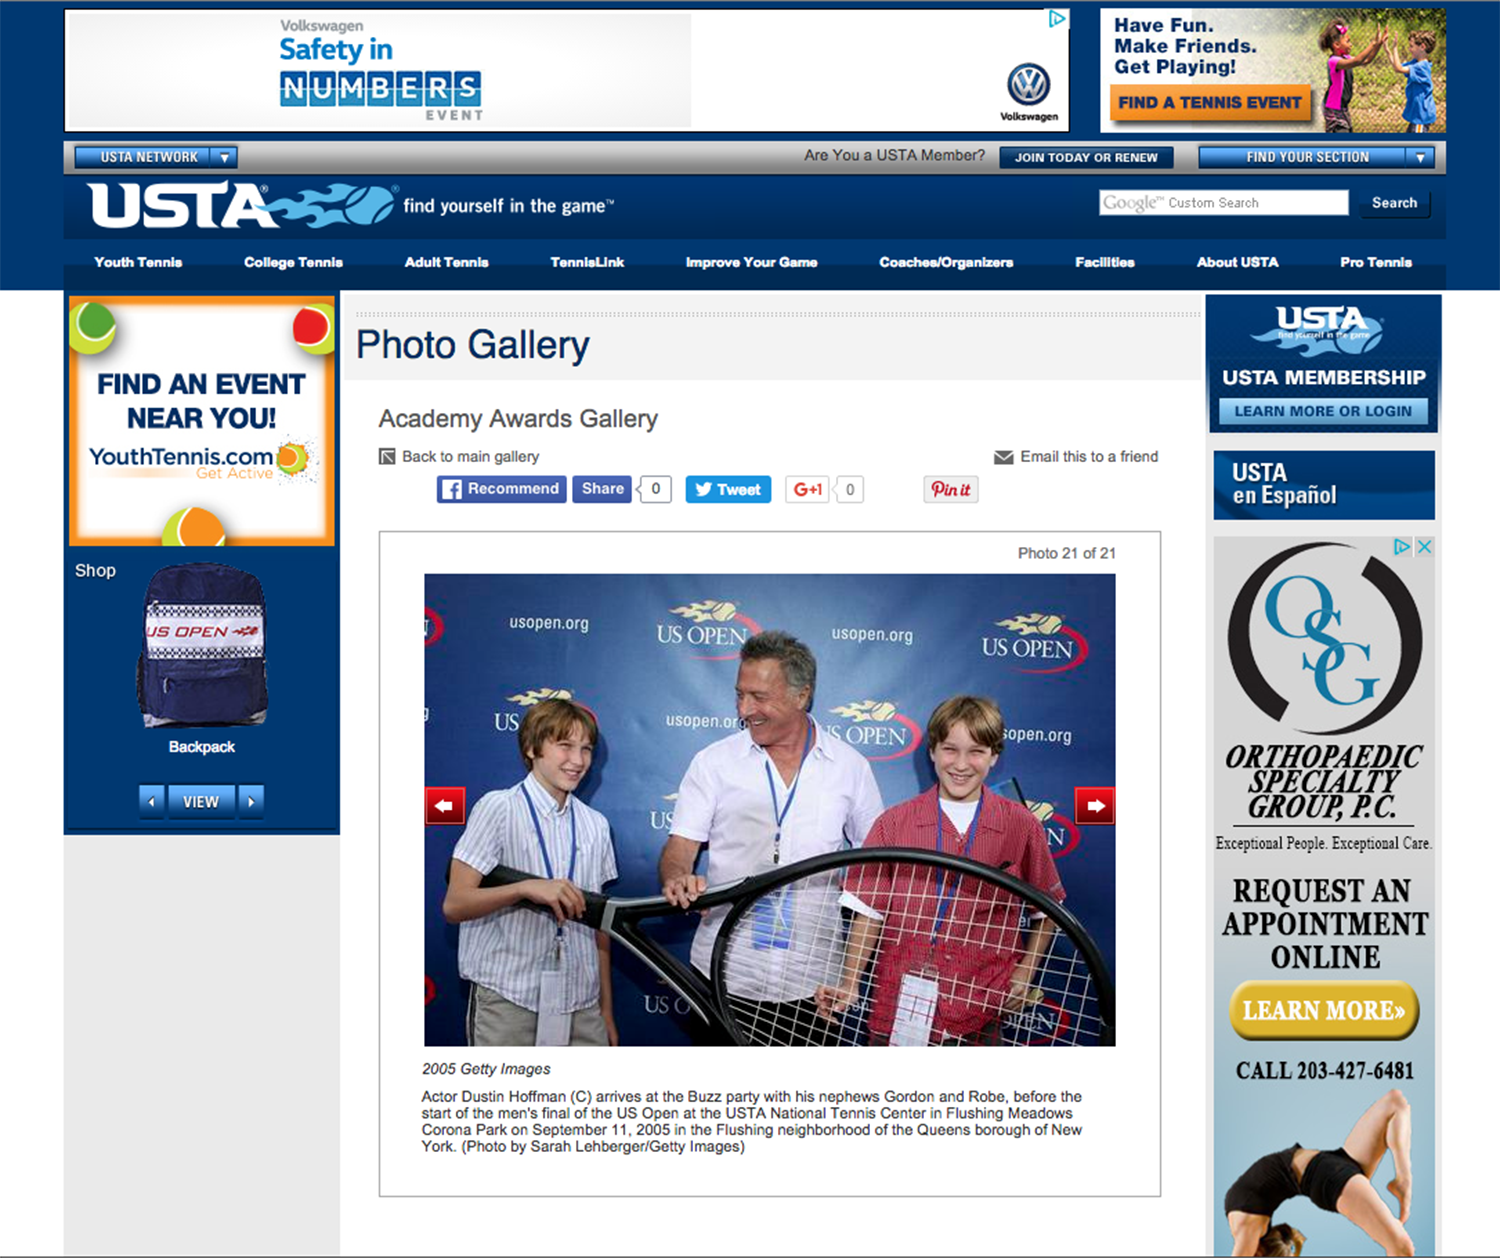 event-usta-news-feature-slehberger.png